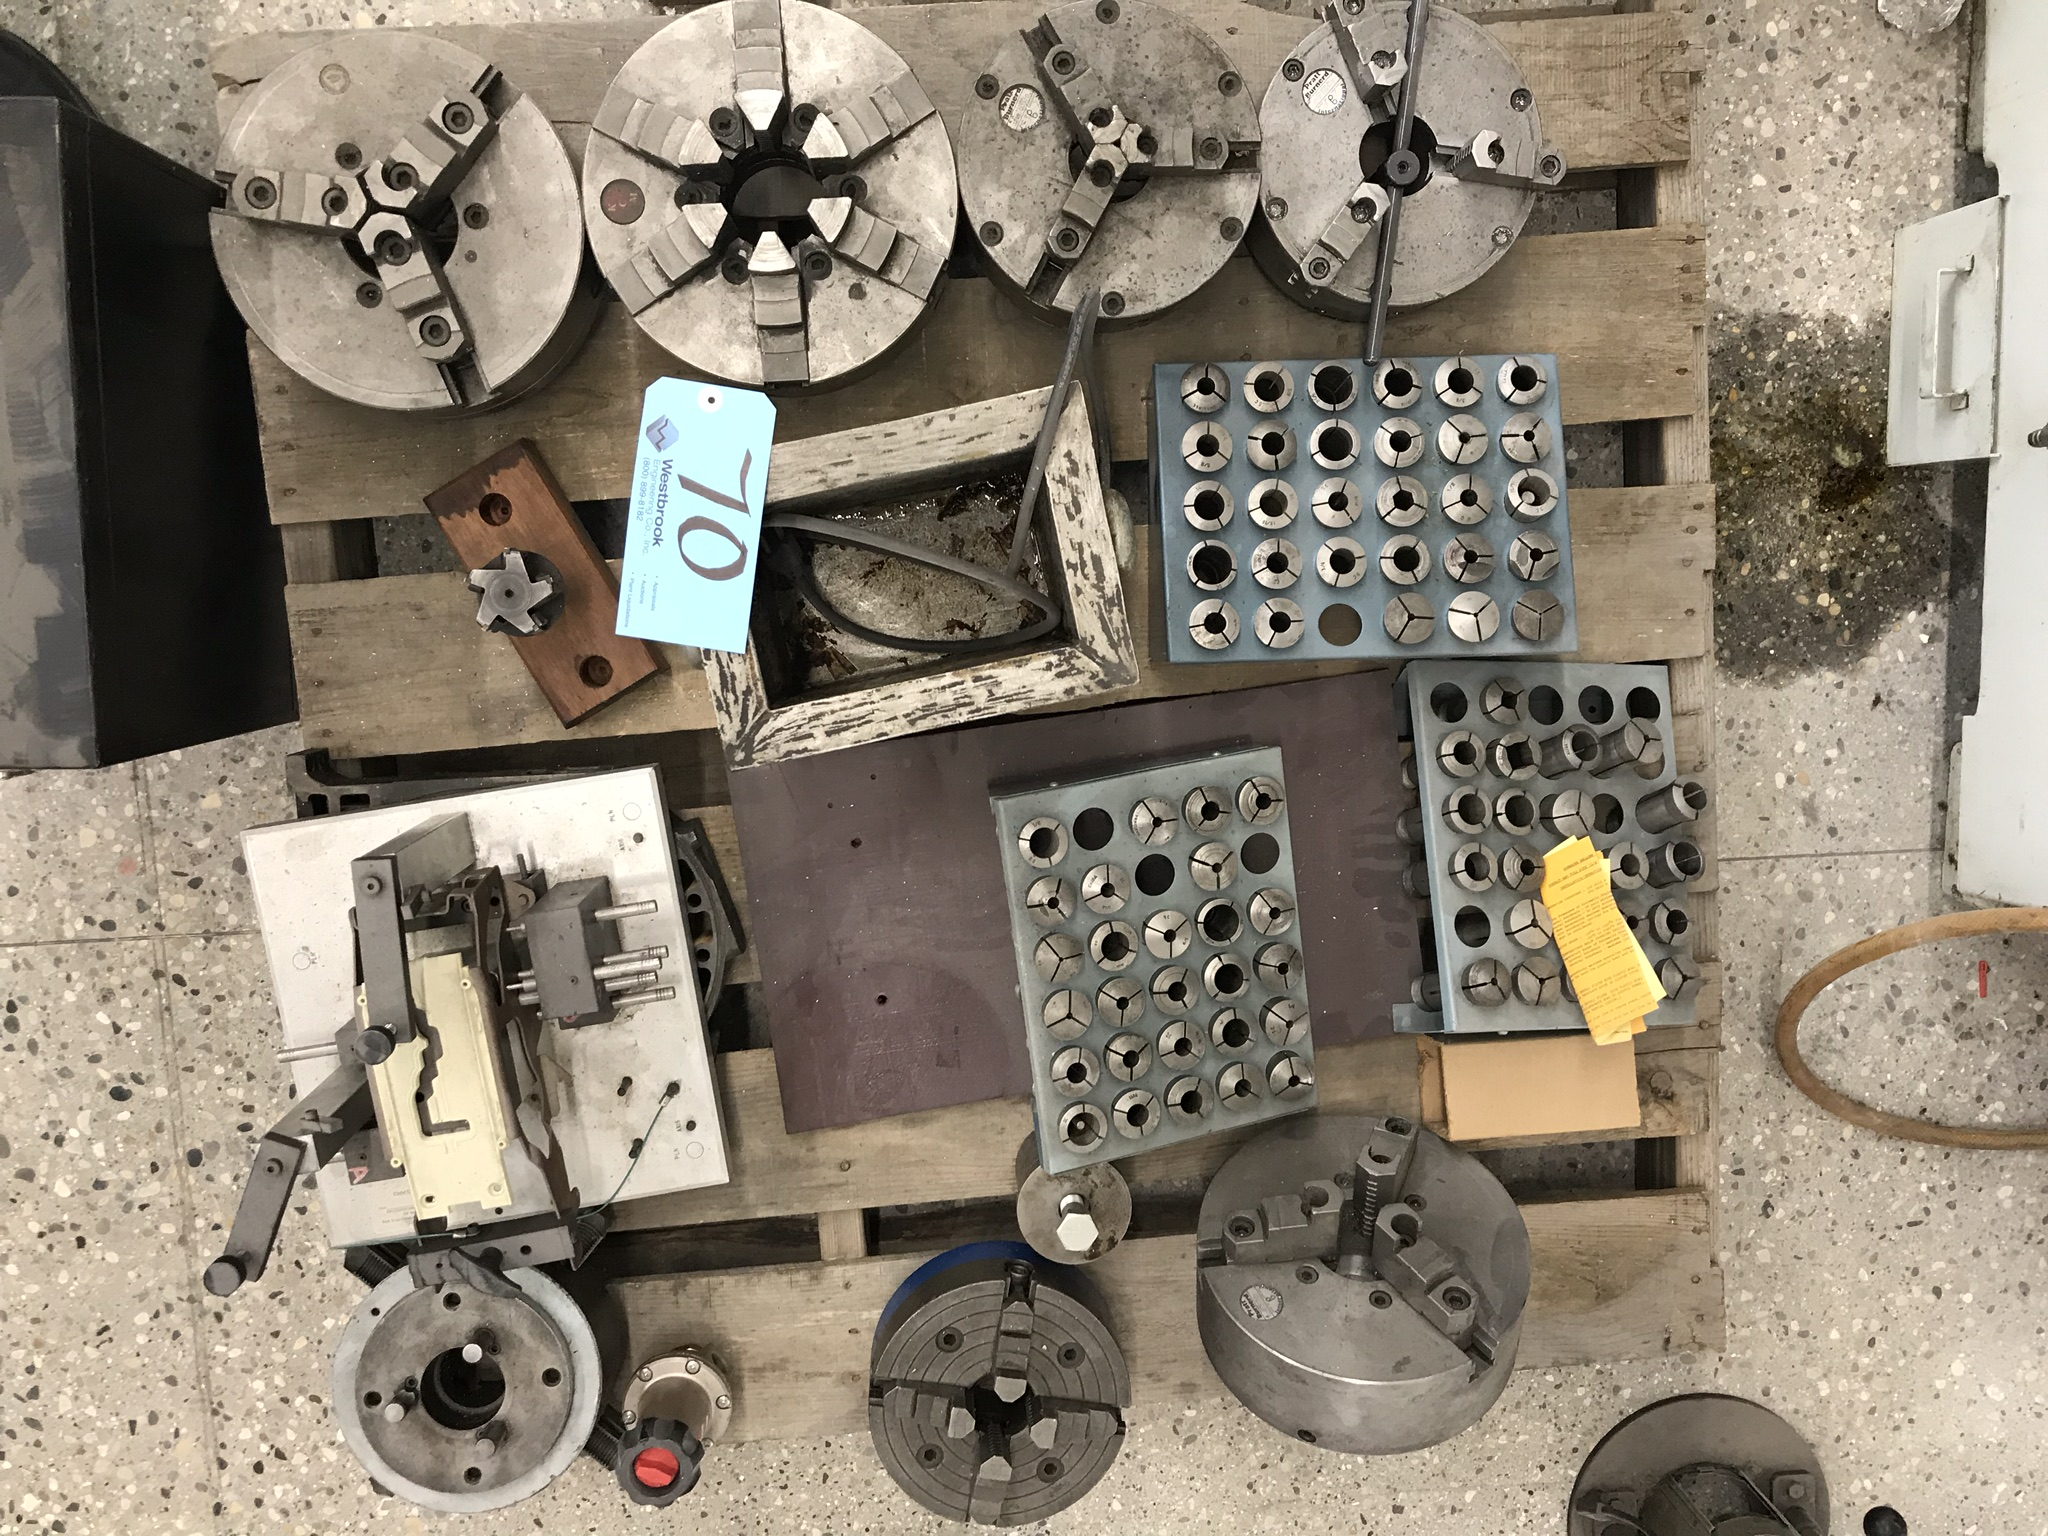 Pallet of Lathe Chucks, Collets and Accessories - Image 2 of 2